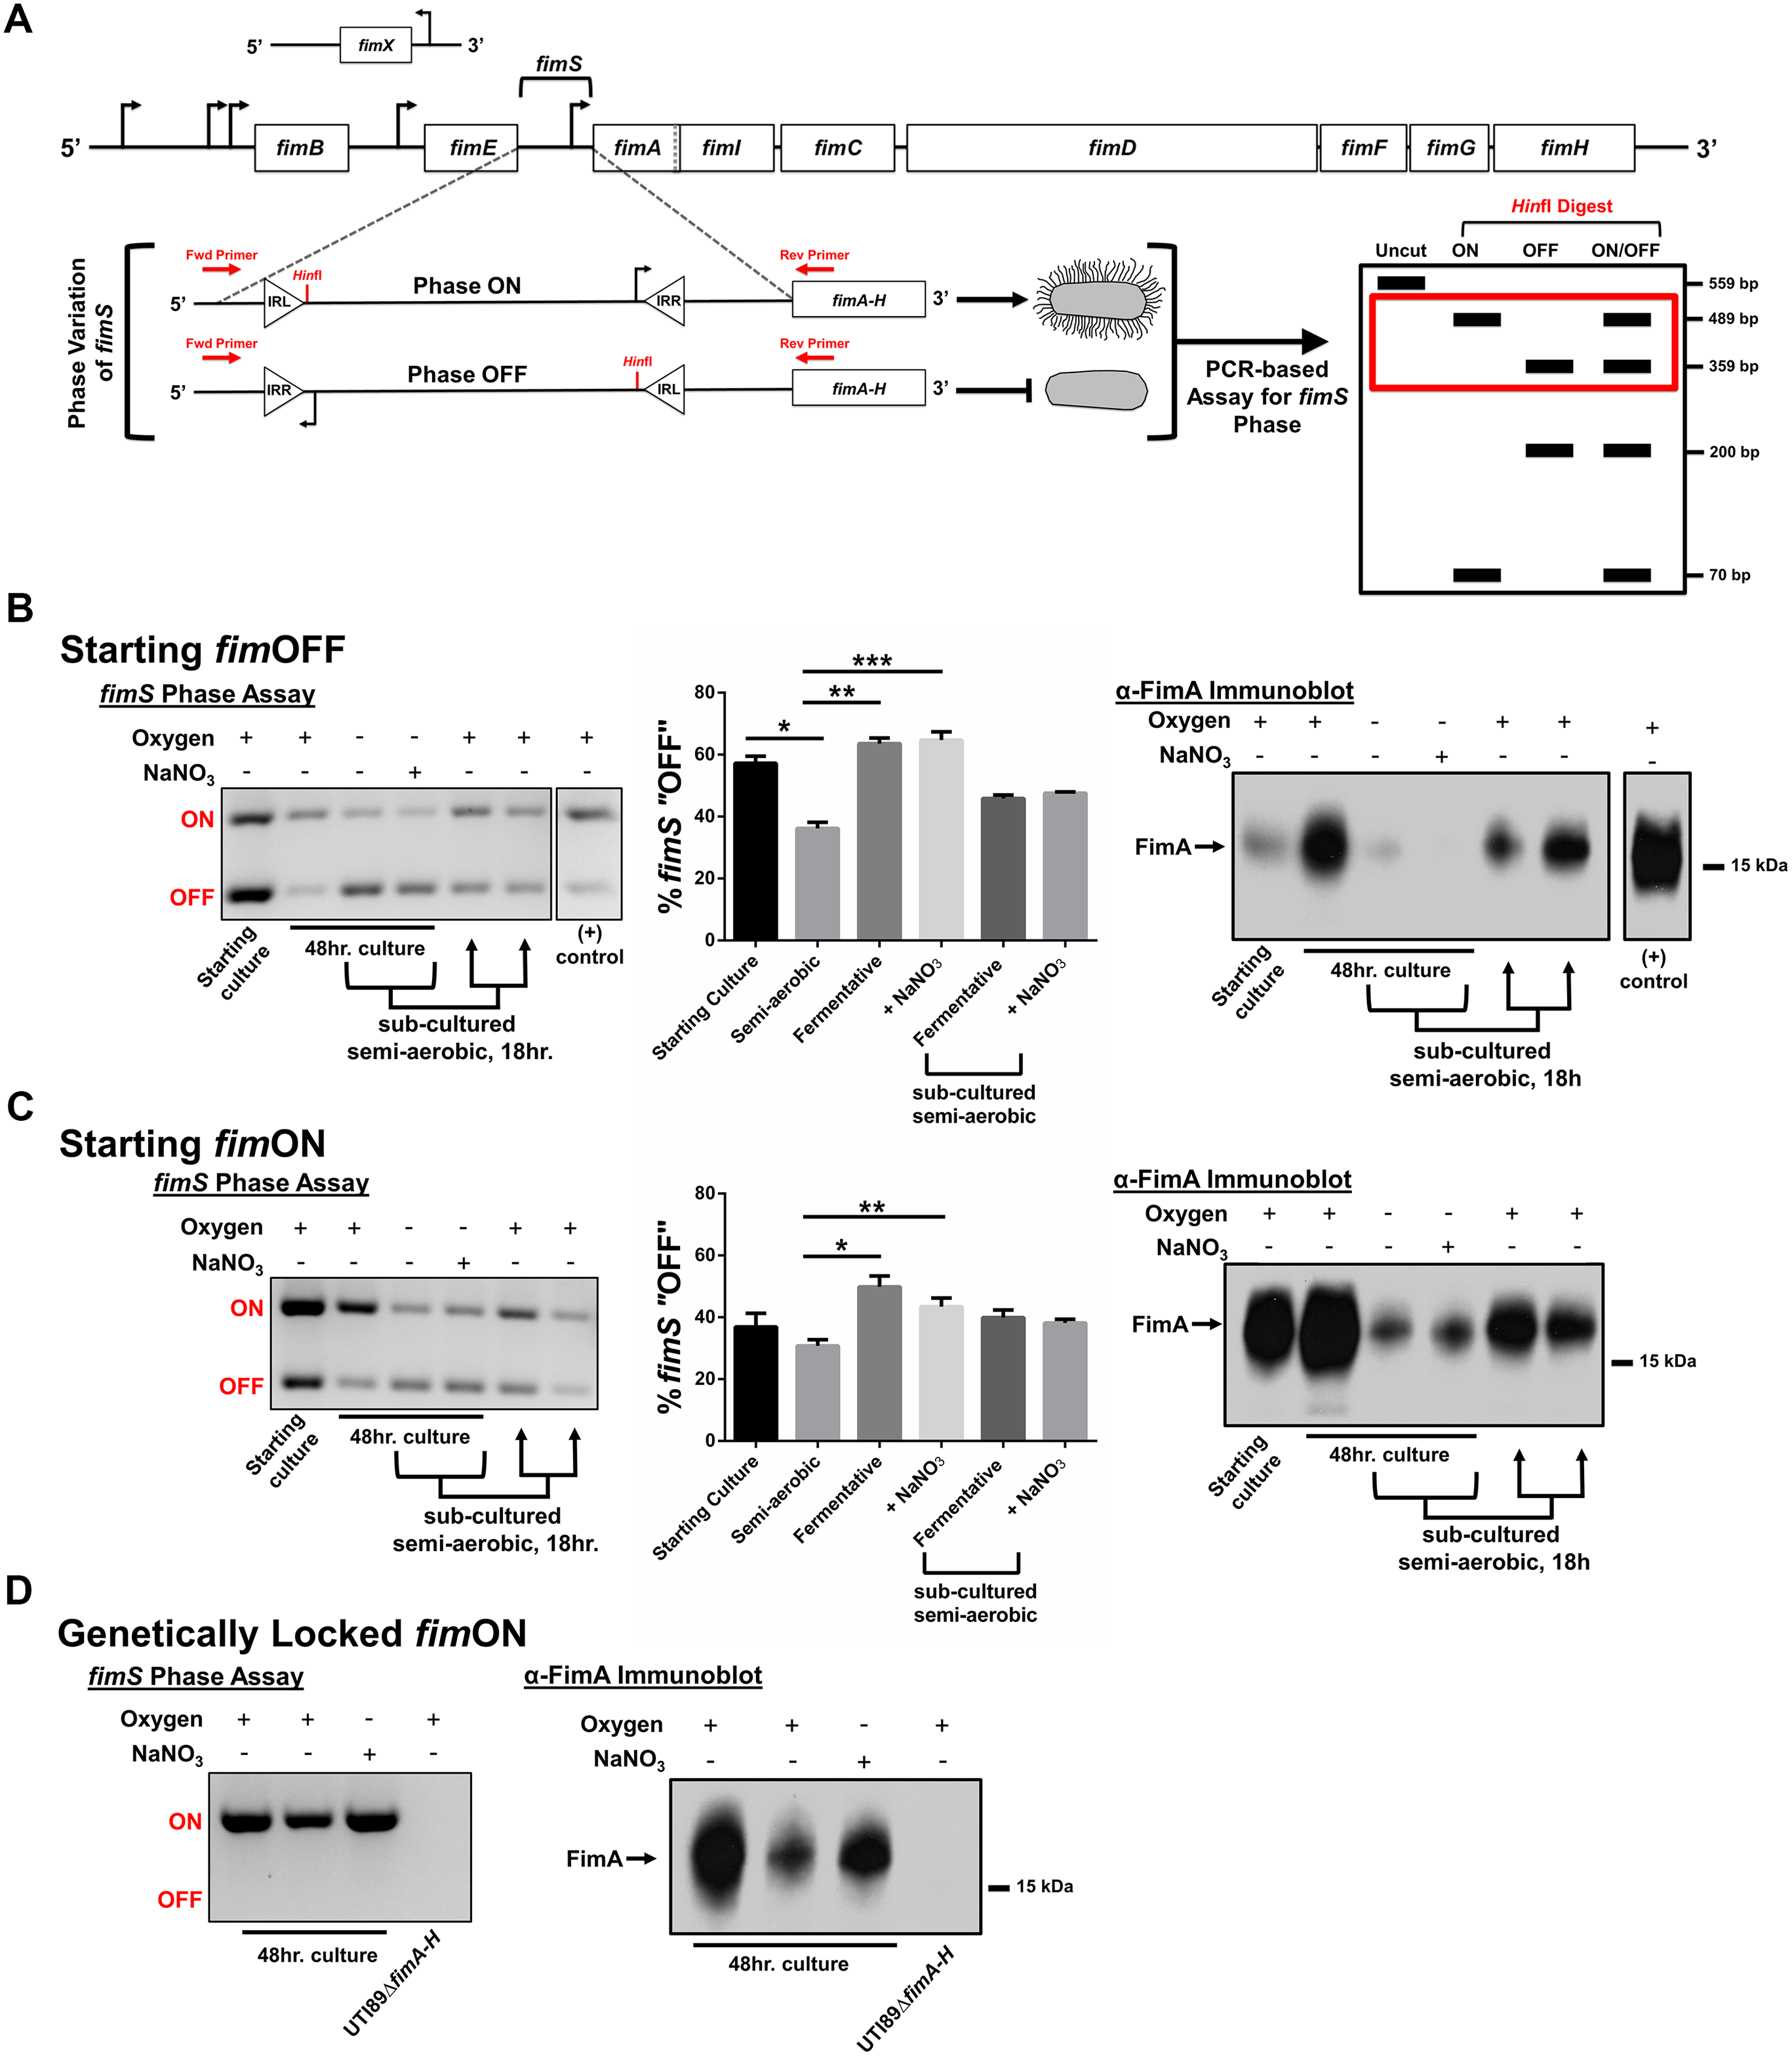 UPEC type 1 pili expression is repressed under oxygen-deplete growth conditions.